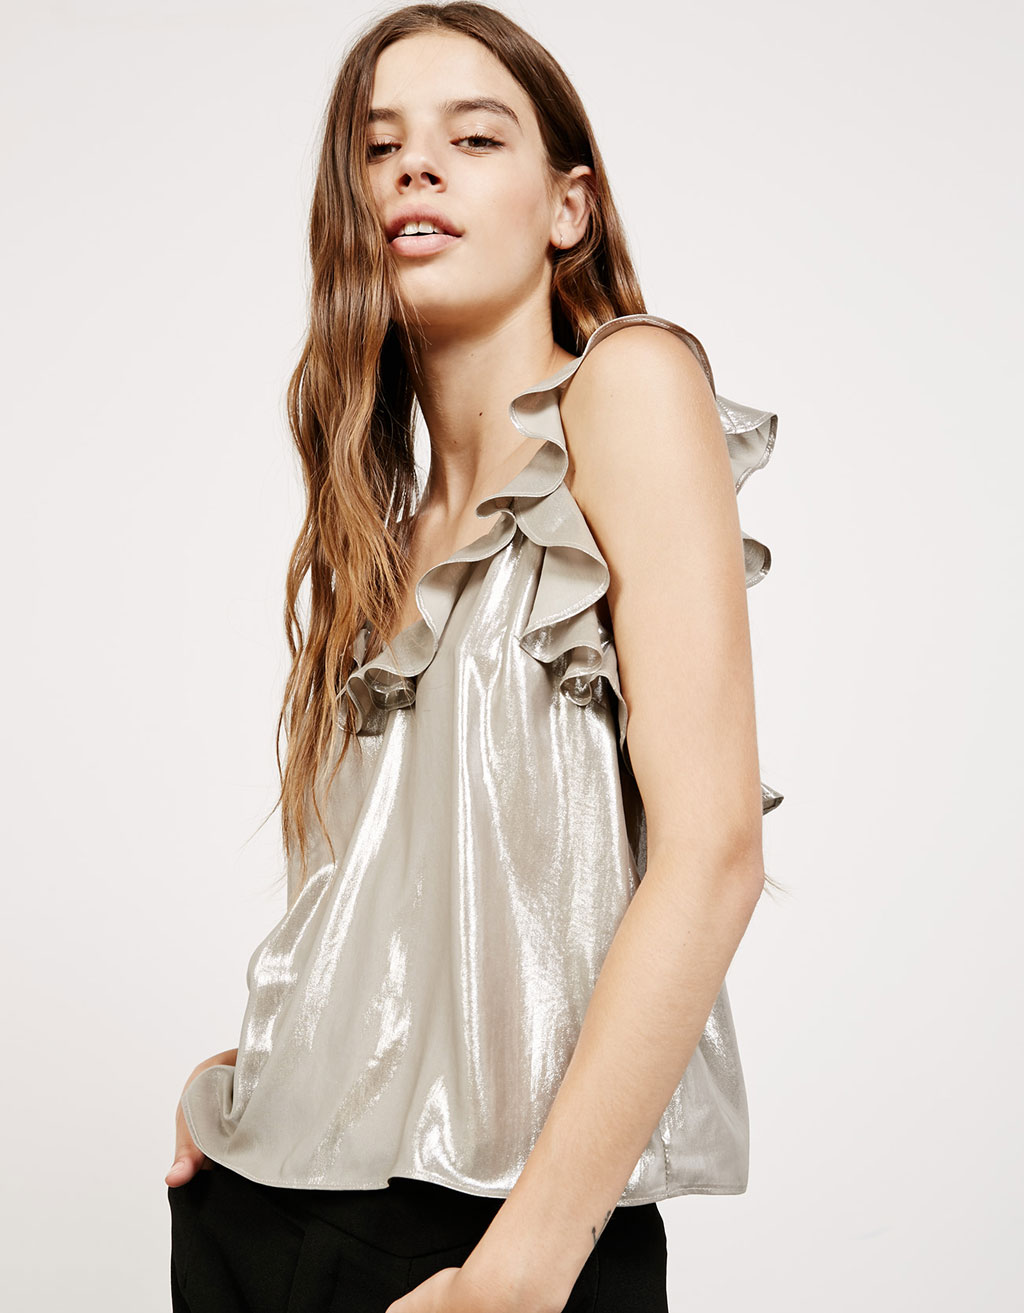 Laminated strappy top with neckline ruffle